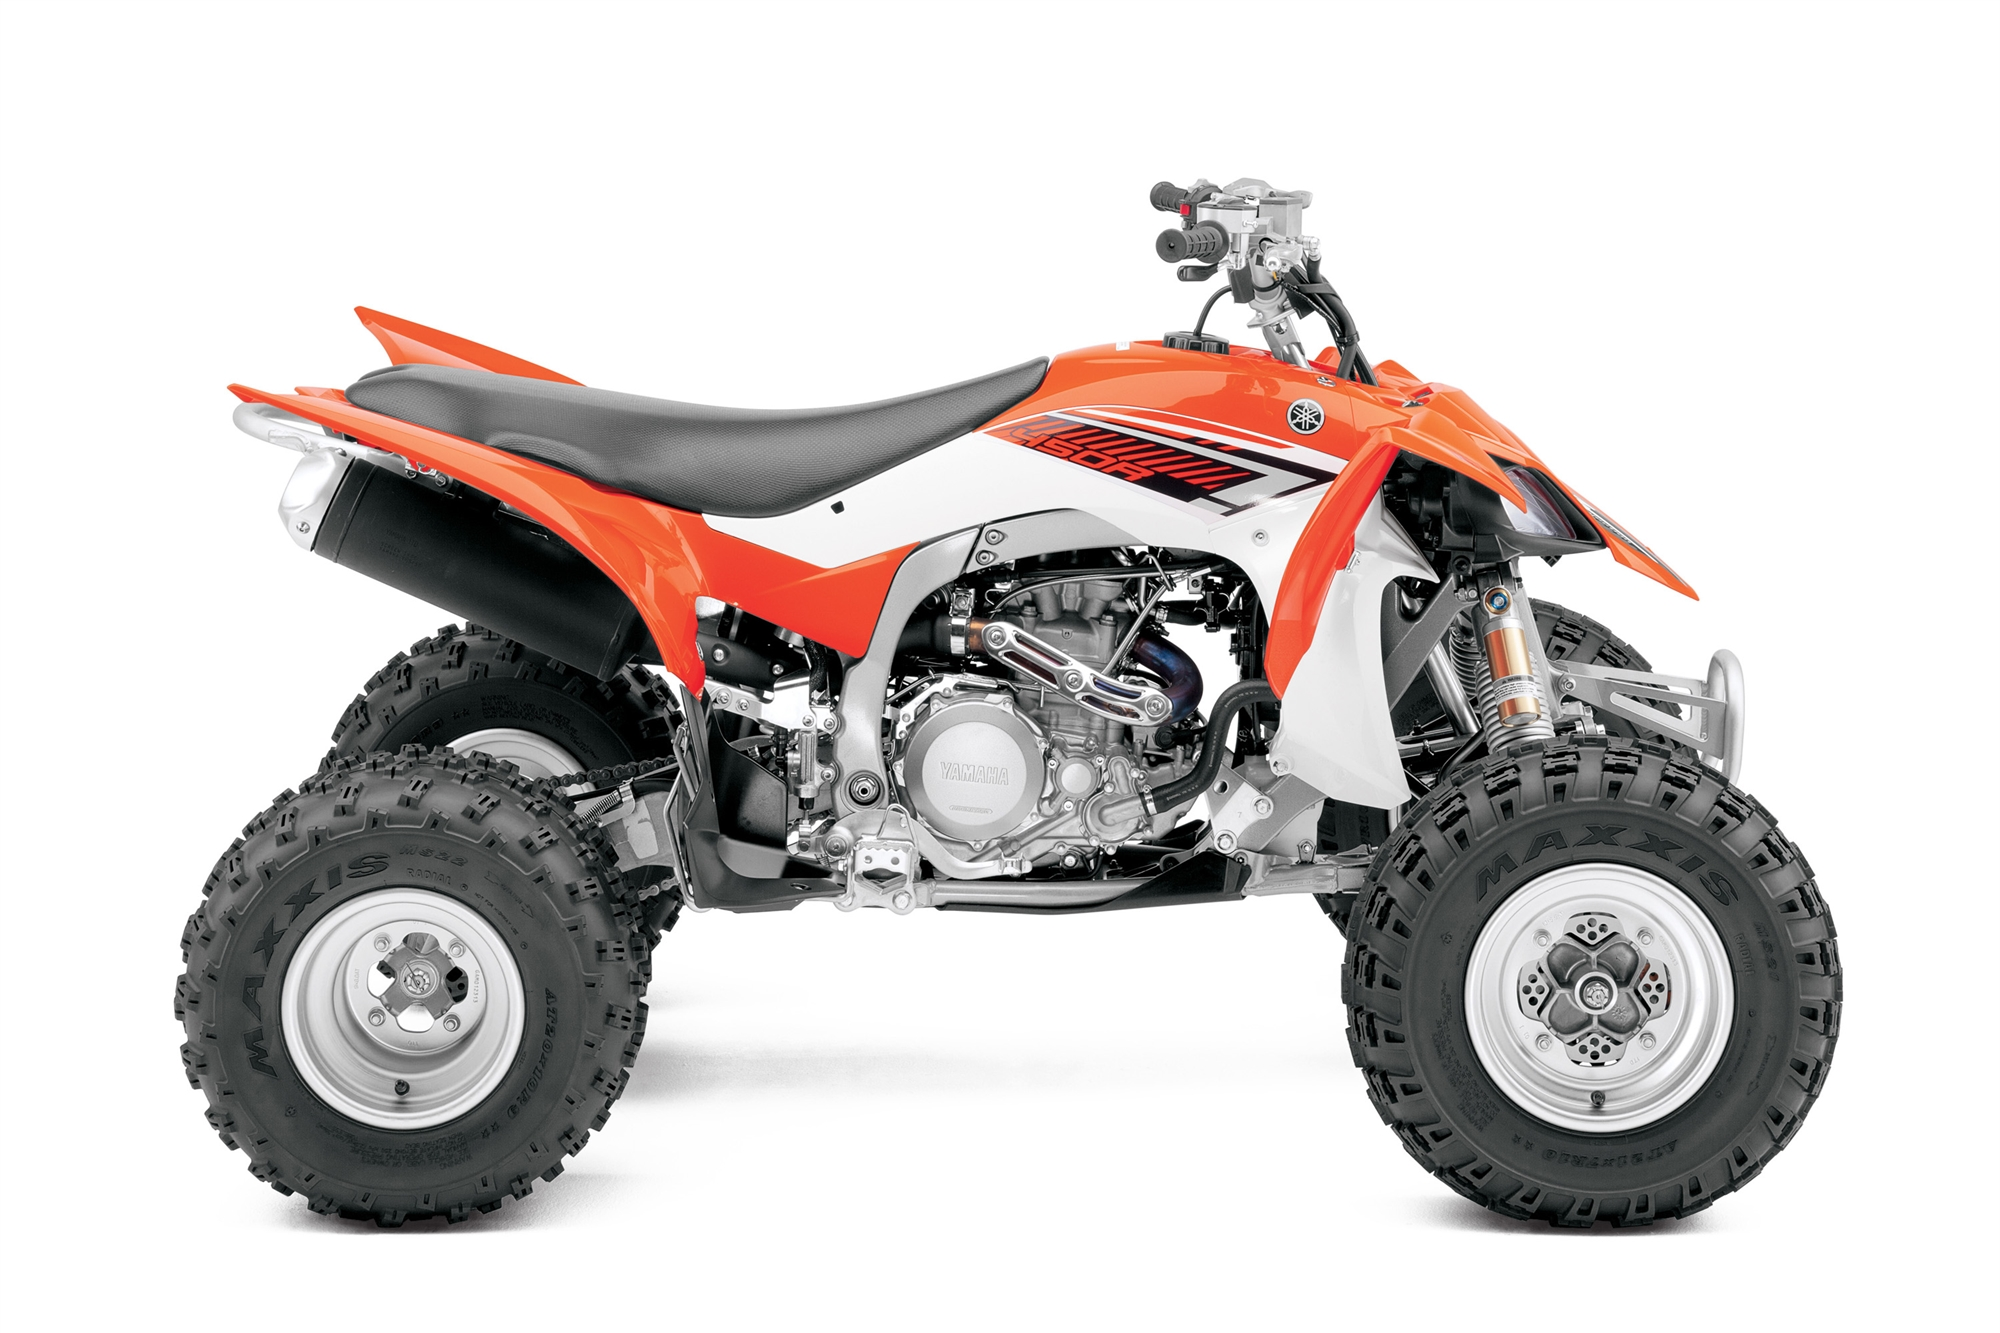 2014 yamaha yfz450r brings slipper clutch to the atv world for 2014 yamaha atv